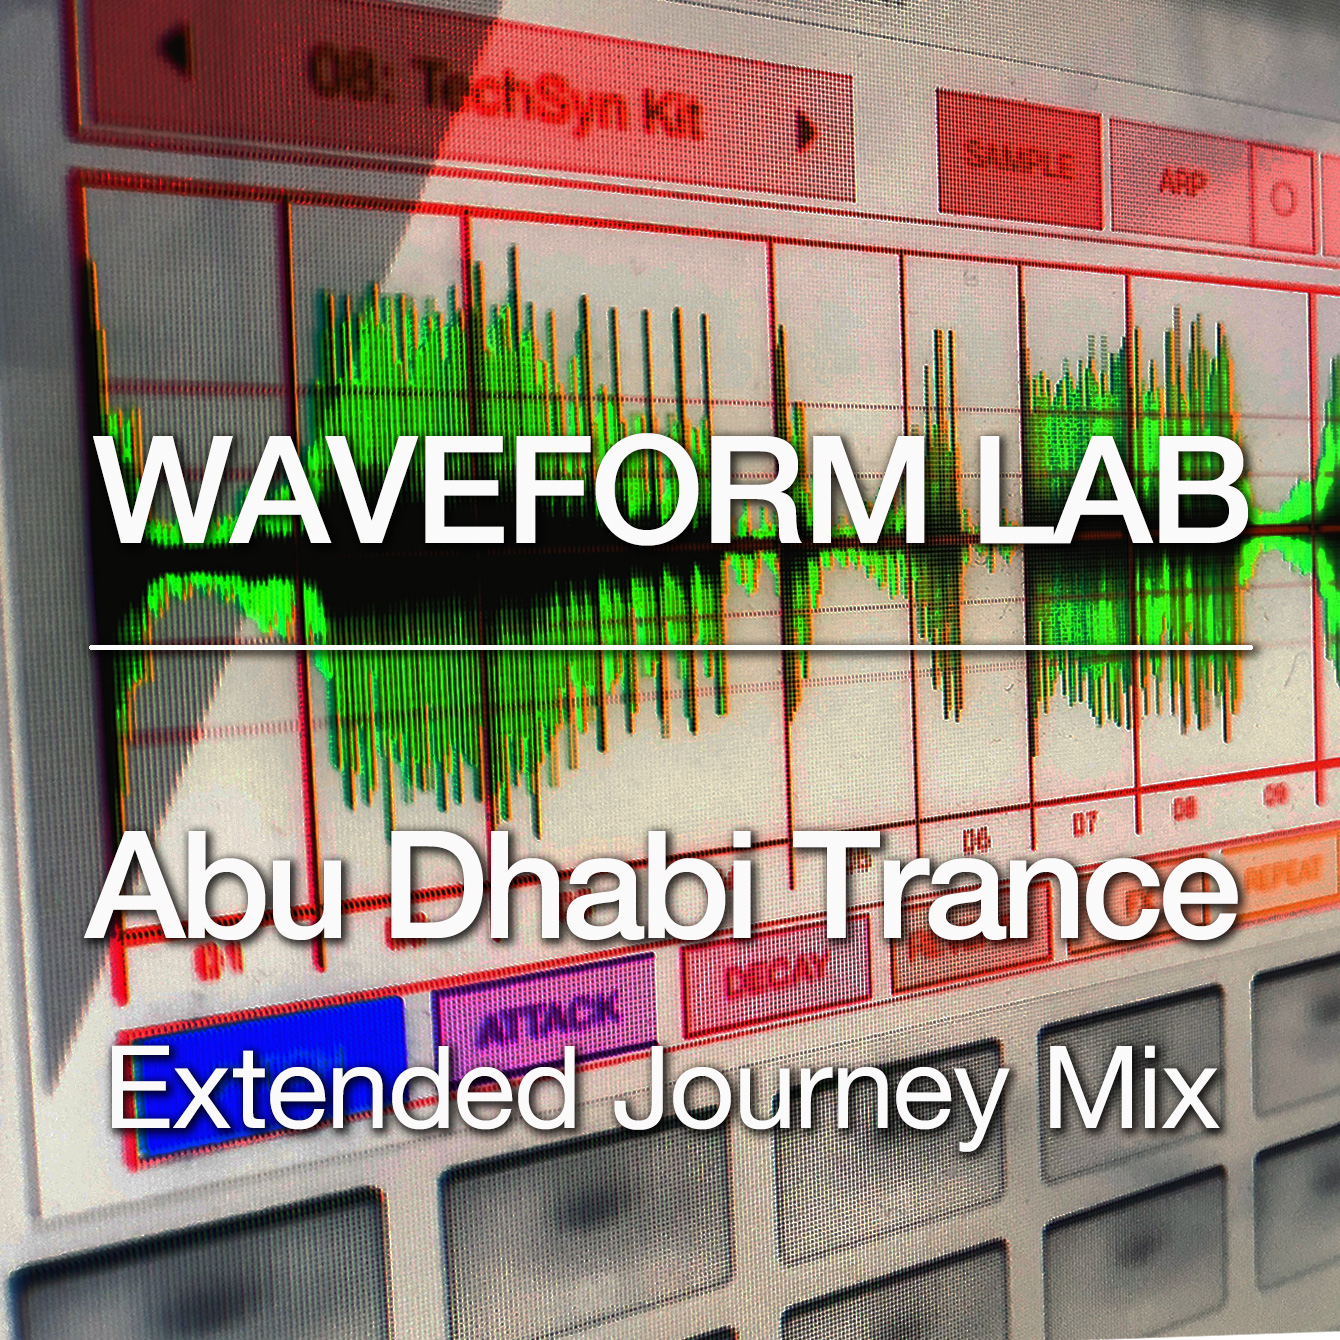 Abu Dhabi Trance Extended Journey Mix / August 13, 2018